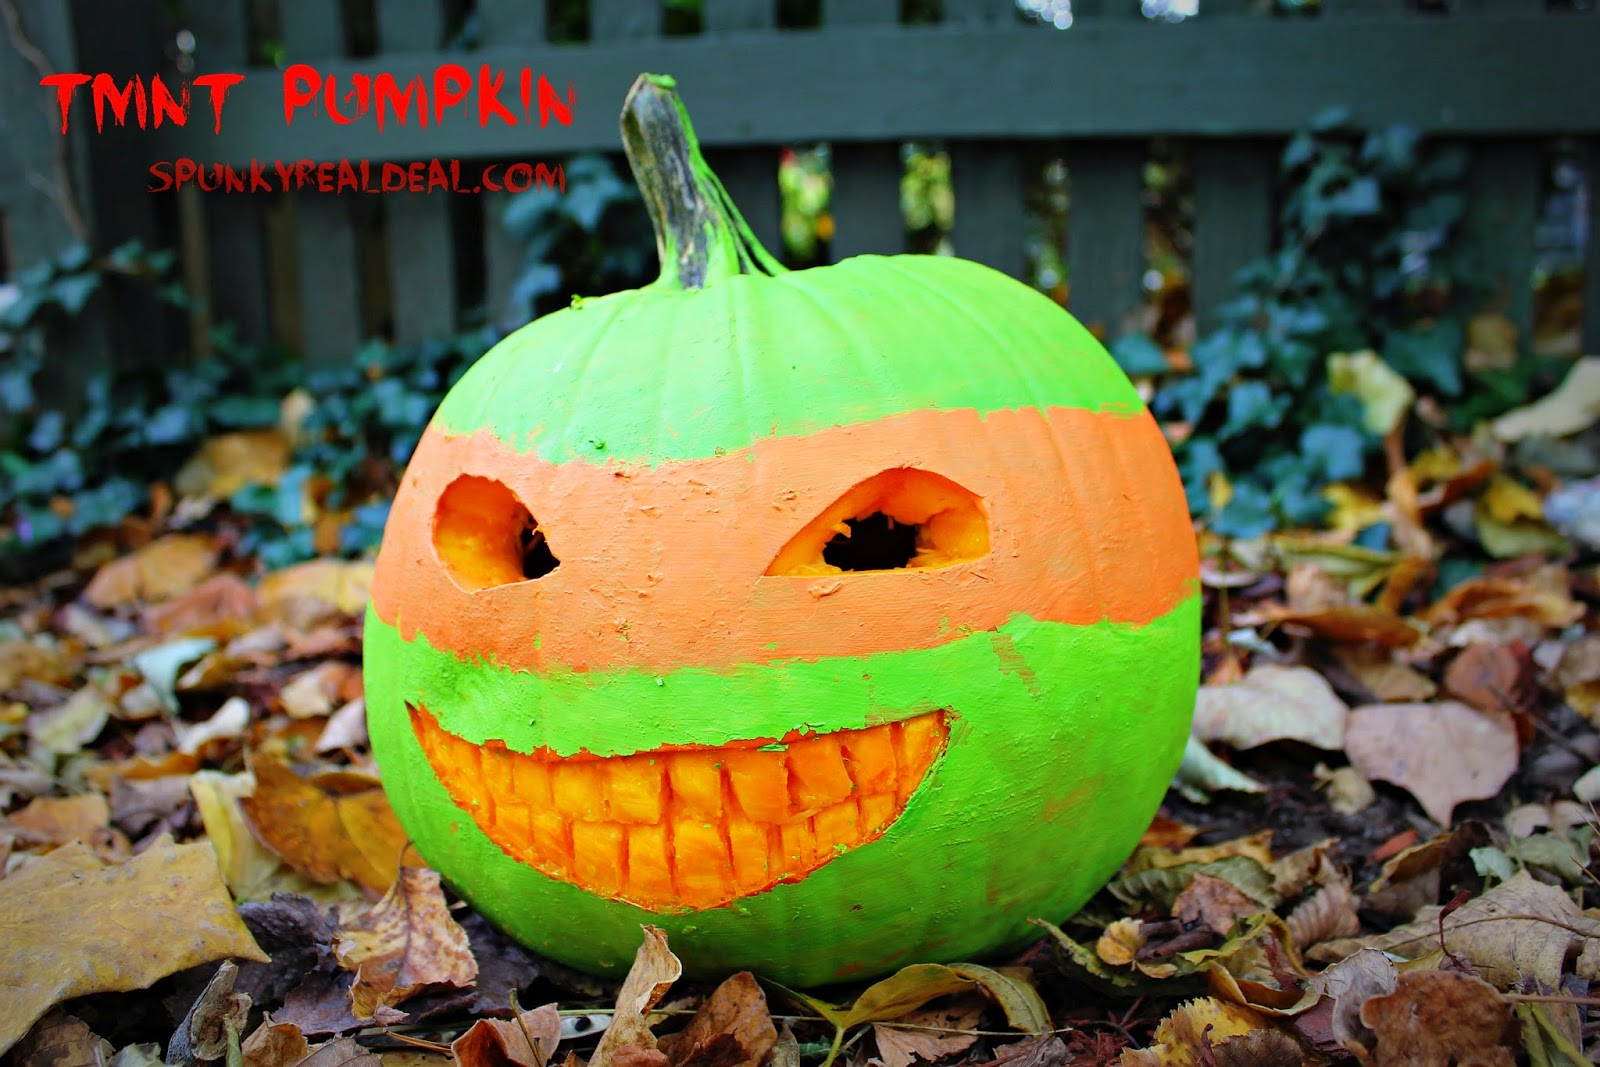 Teenage Mutant Ninja Turtle Pumpkin